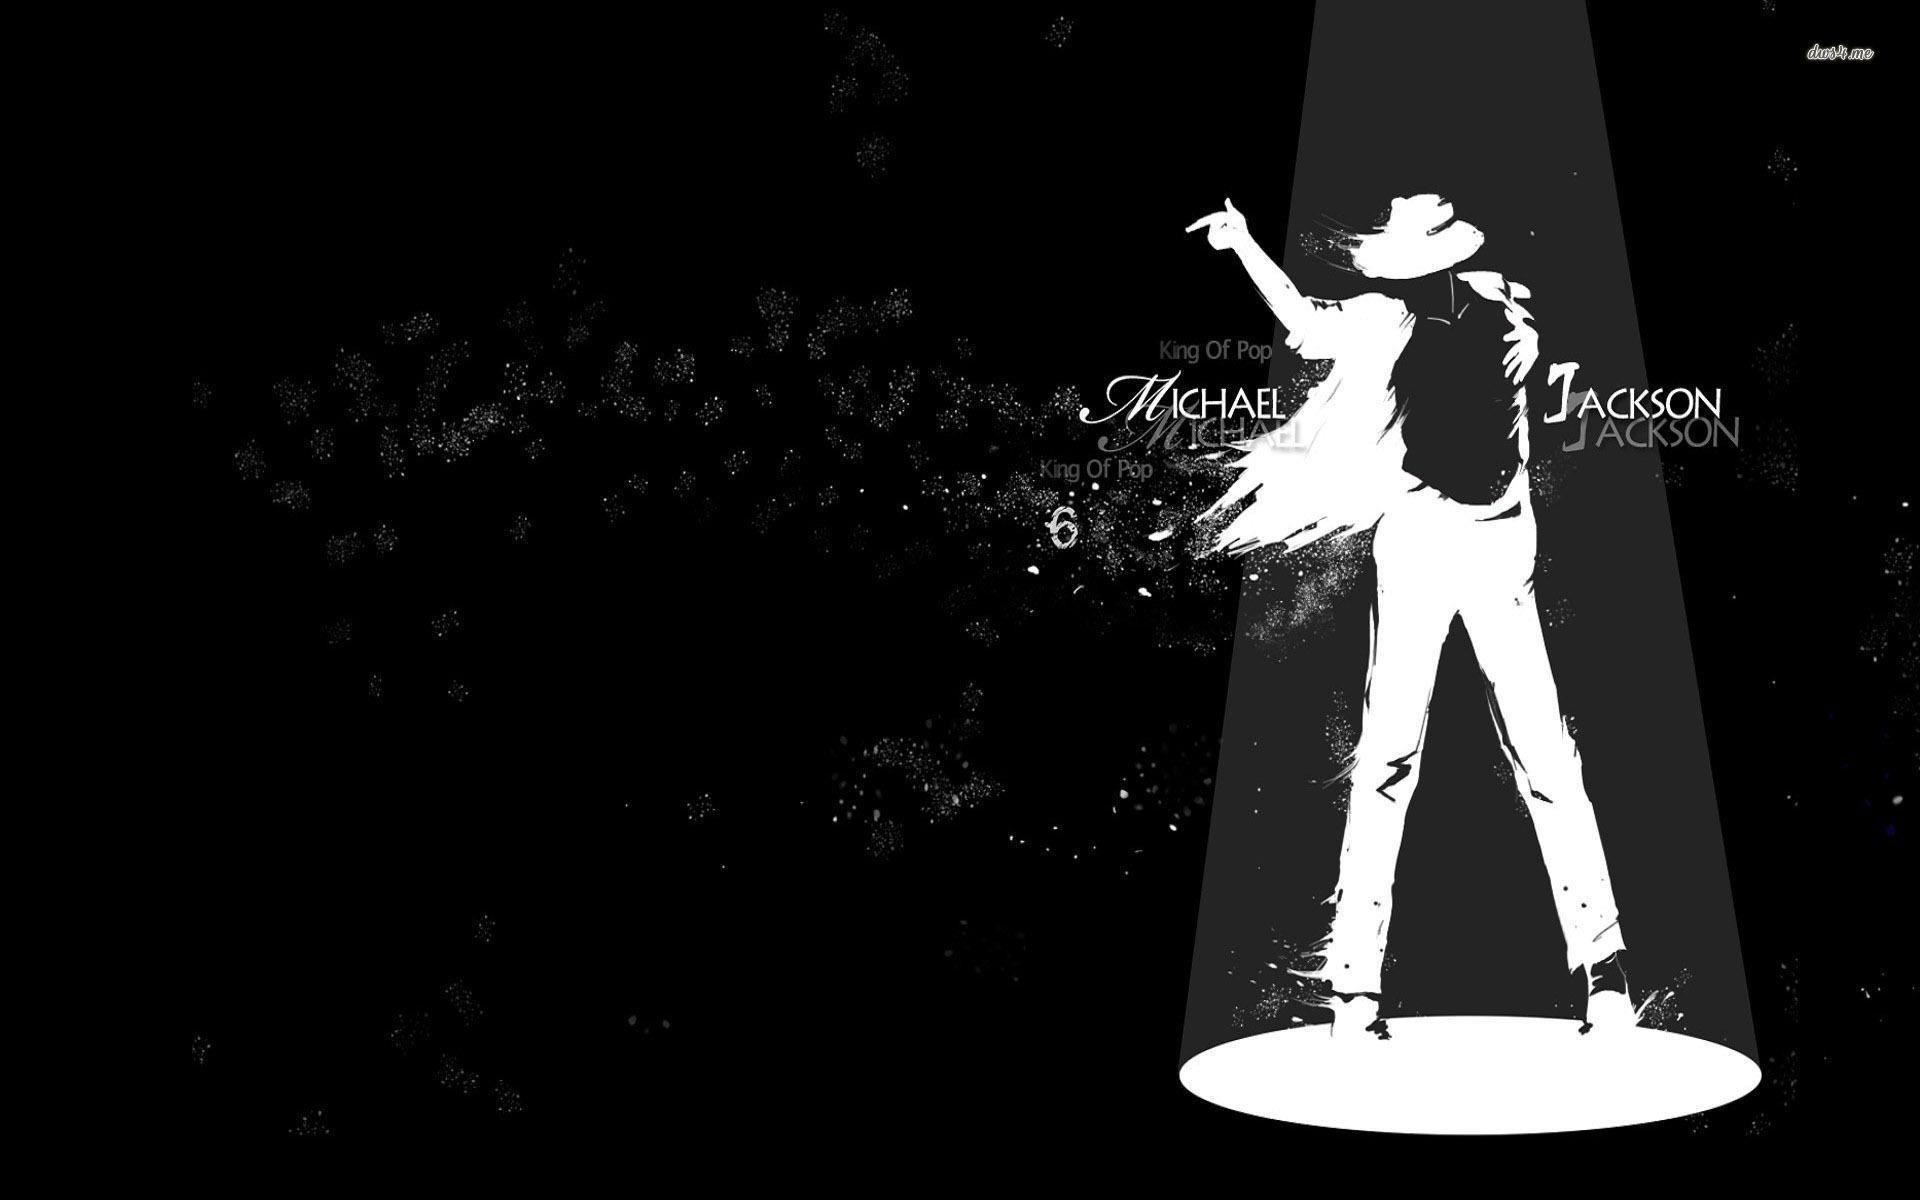 iphone pictures to computer michael jackson hd wallpapers wallpaper cave 5490